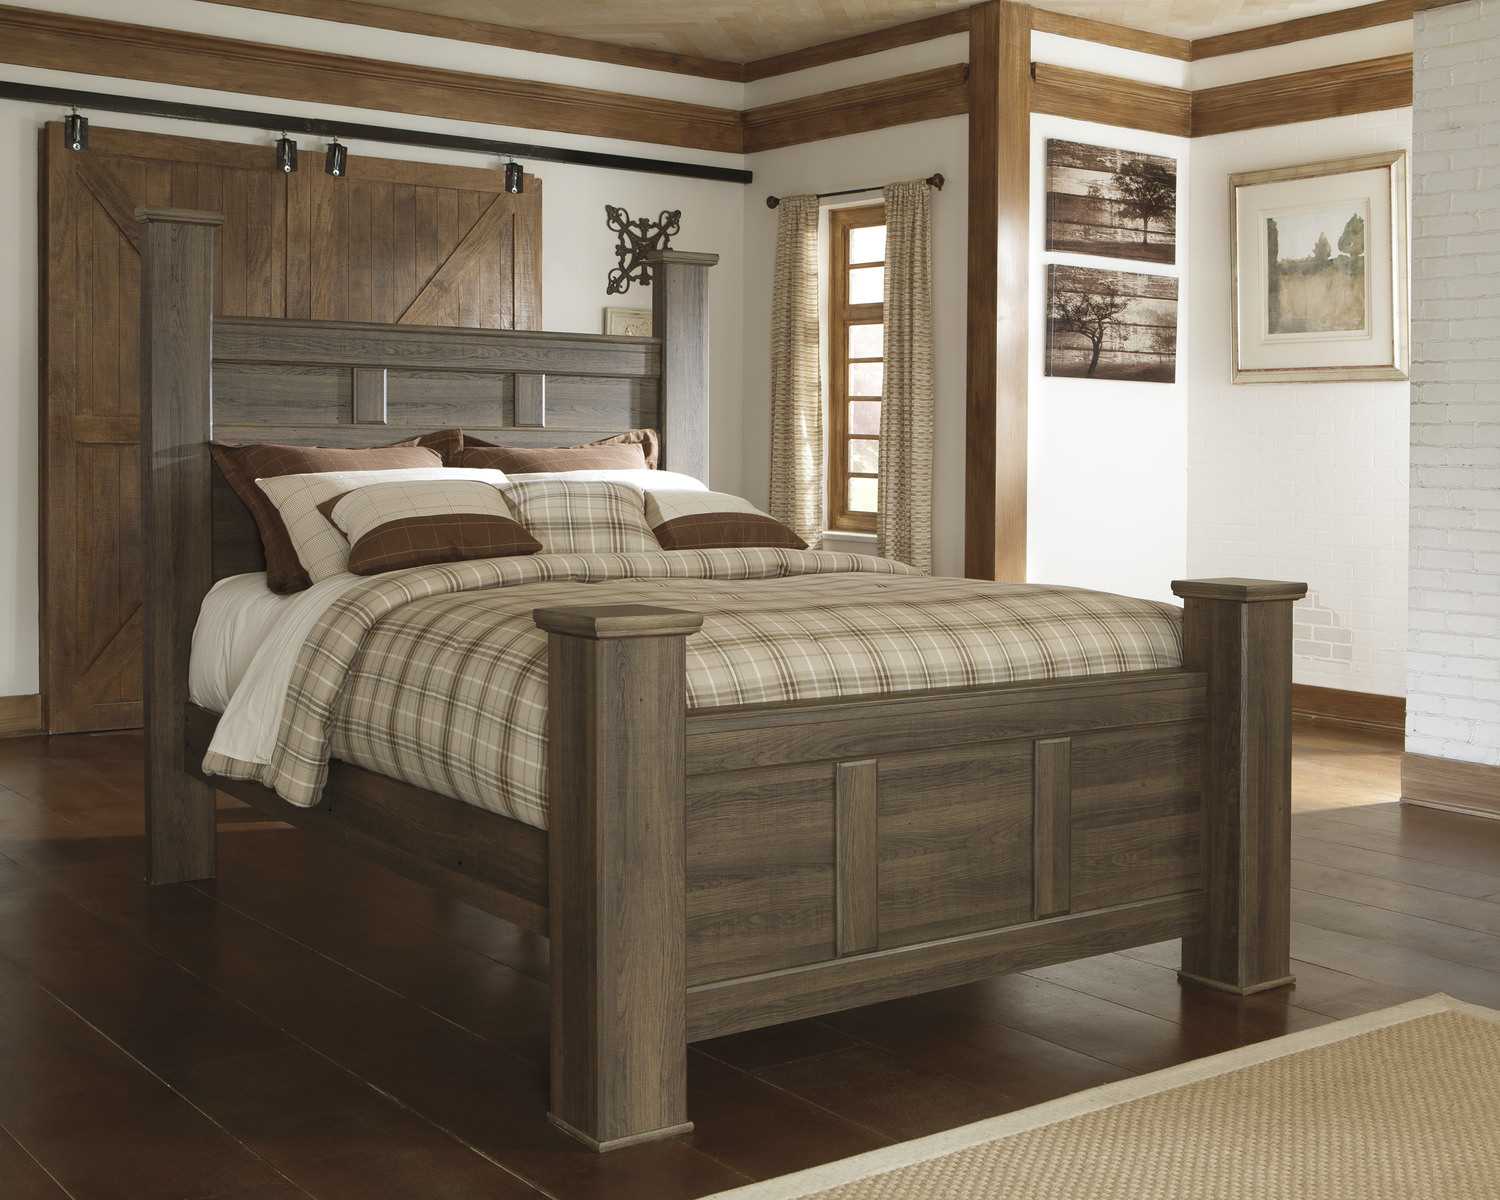 Santa Cruz Bedroom Furniture Santa Cruz Poster Bed Bedroom Set Dock86 Spend A Good Deal